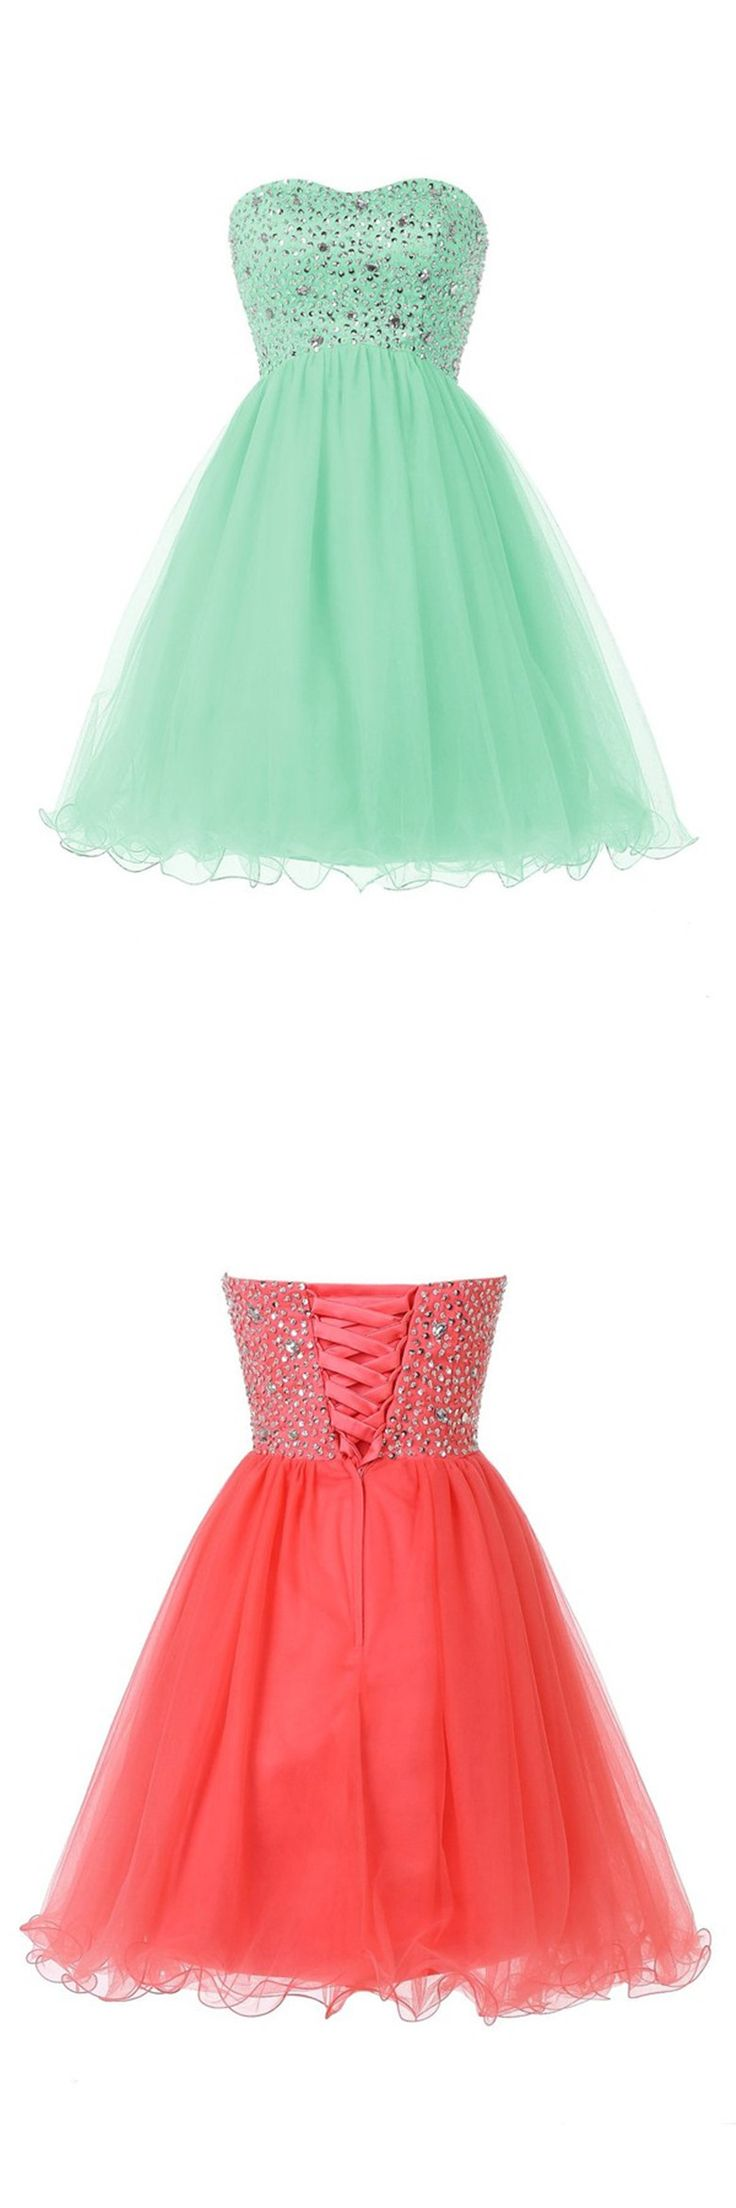 2016 homecoming dress,strapless homecoming dress,short homecoming dress,cute homecoming dress,mint homecoming dress,coral homecoming dress,lace up homecoming dress,sparkling homecoming dress,mini cocktail dress